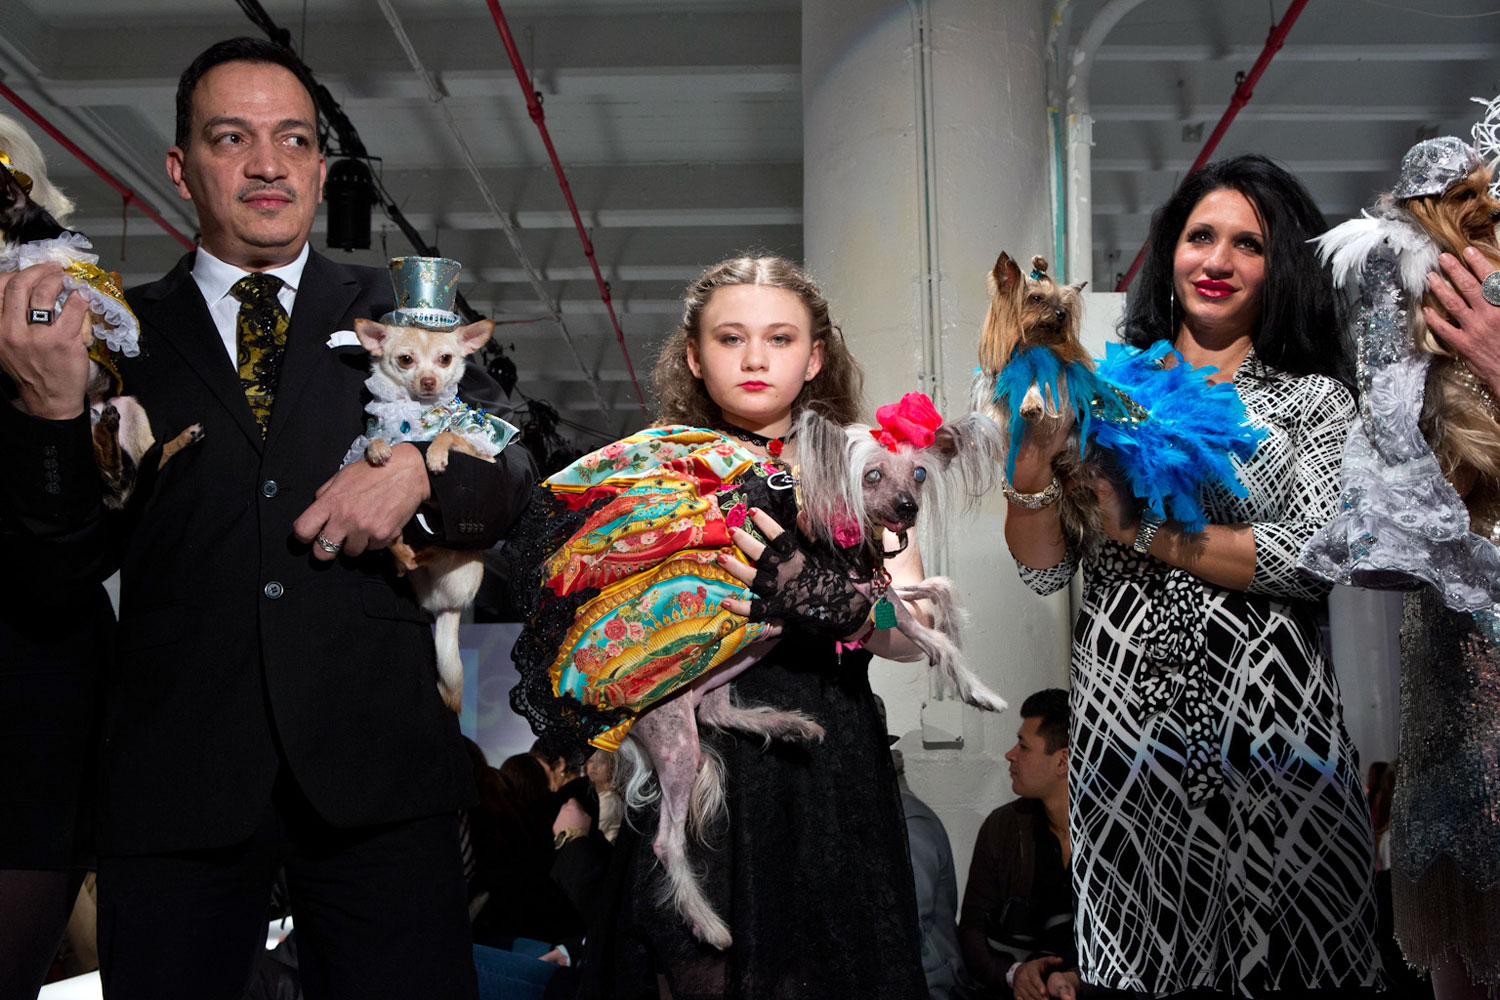 The following photographs were taken Feb. through June 2013.From left to right: Kimba, a Chihuahua, companion to Anthony Rubio; Nora, a Chinese Crested, companion to Robin Schwartz (shown here with Amelia Forman, Schwartz's daughter); and Rosie, a Yorkie, companion to Grace Forster (shown here with Ashley Speranza) backstage after showing Bandit Rubio designs at the first ever pet fashion show at Brooklyn Fashion Week.